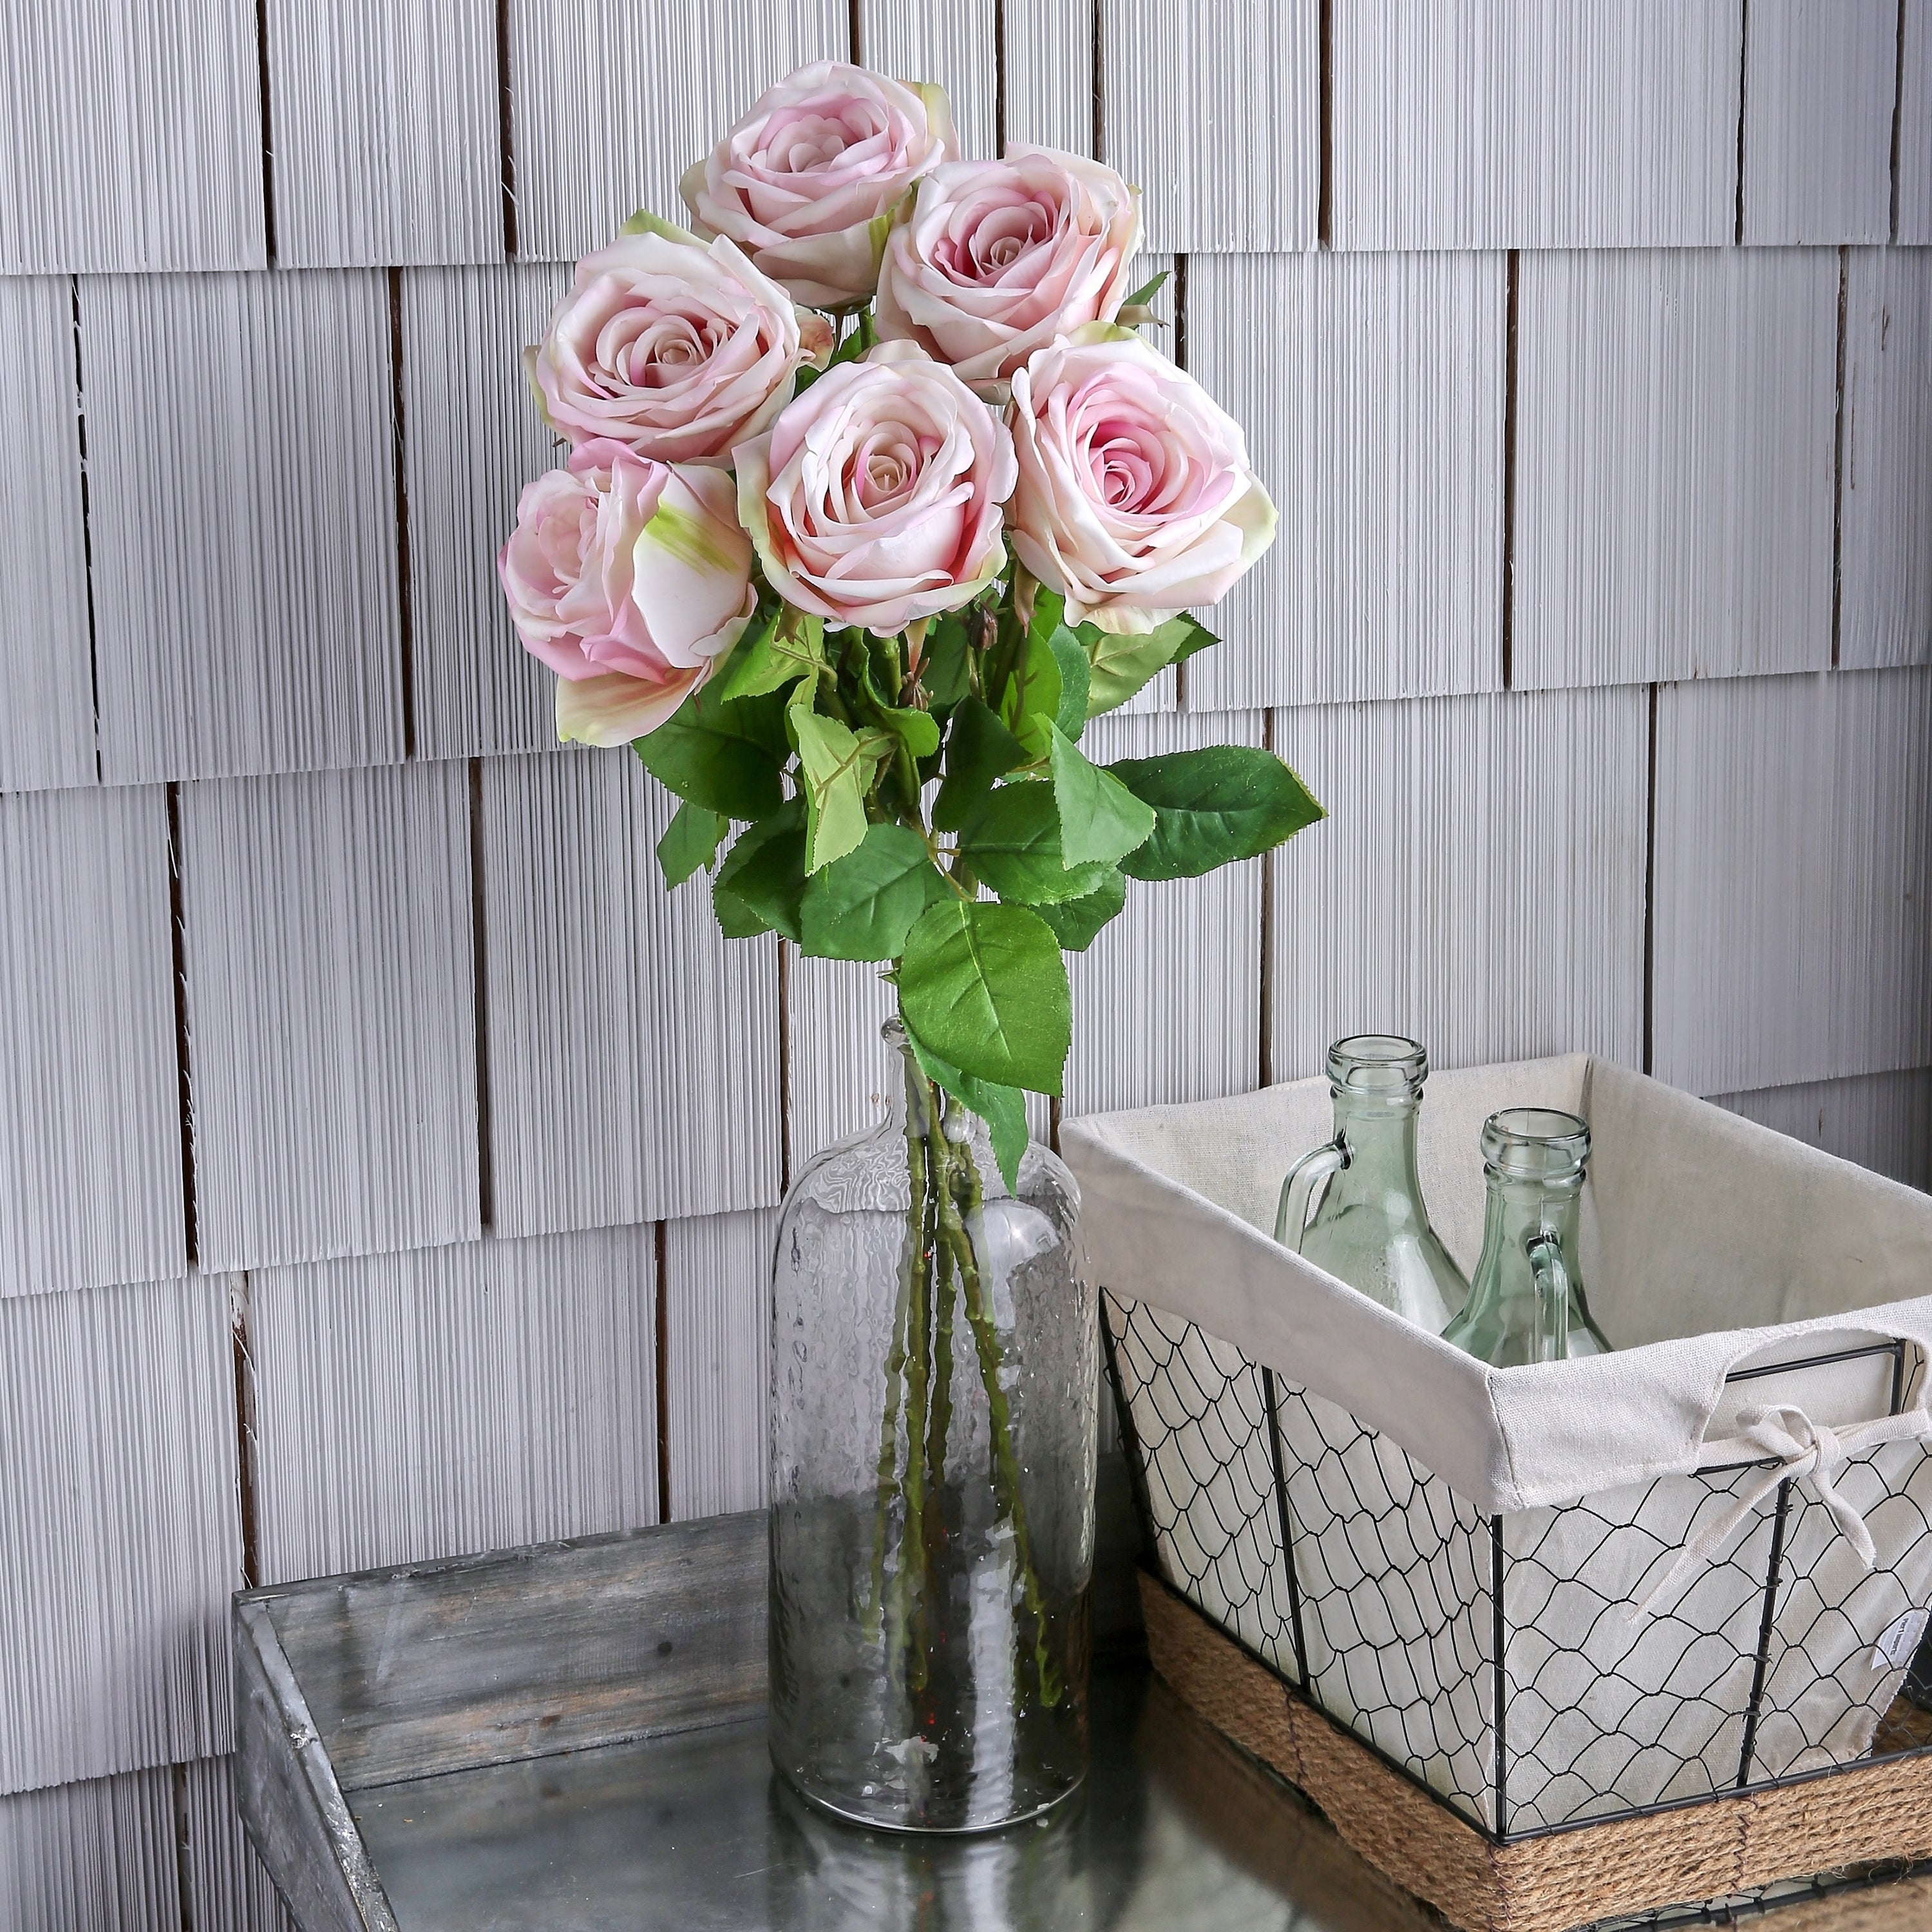 Natural Touch French Roses 26 Long (Set of 6) - Pink